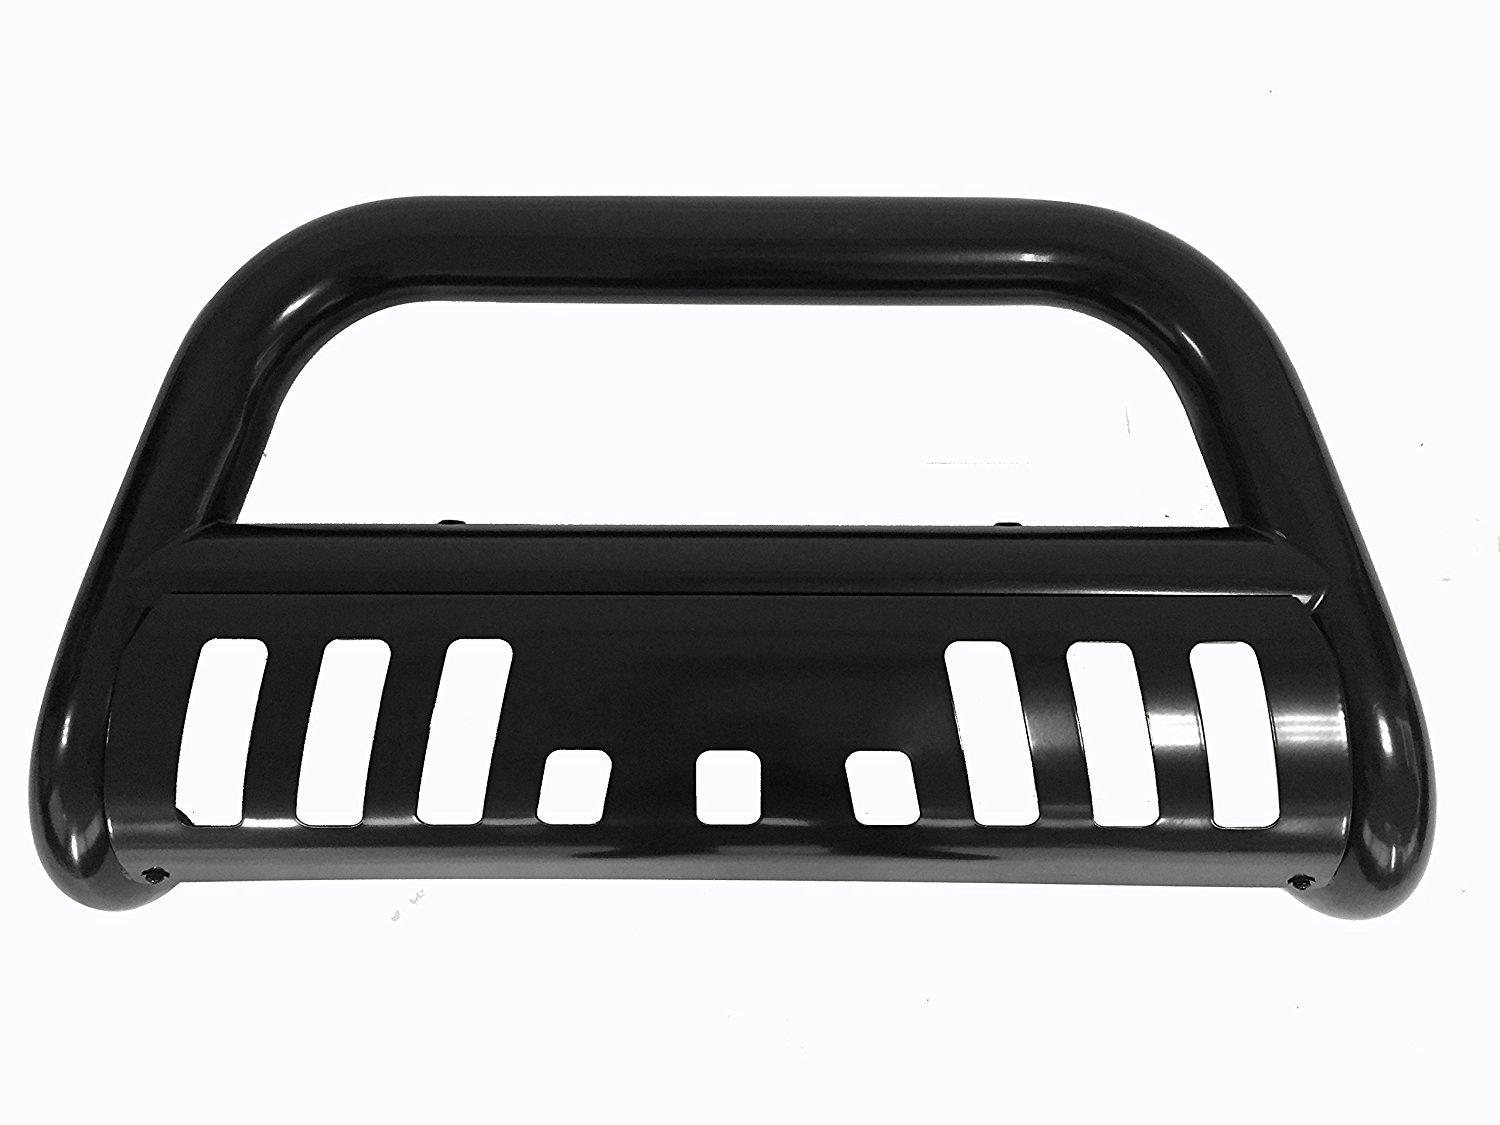 CAREPAIR Bull Bar Skid Plate Front Push Bumper Grille Guard Carbon Steel Black for 2015 2016 2017 Chevrolet Colorado